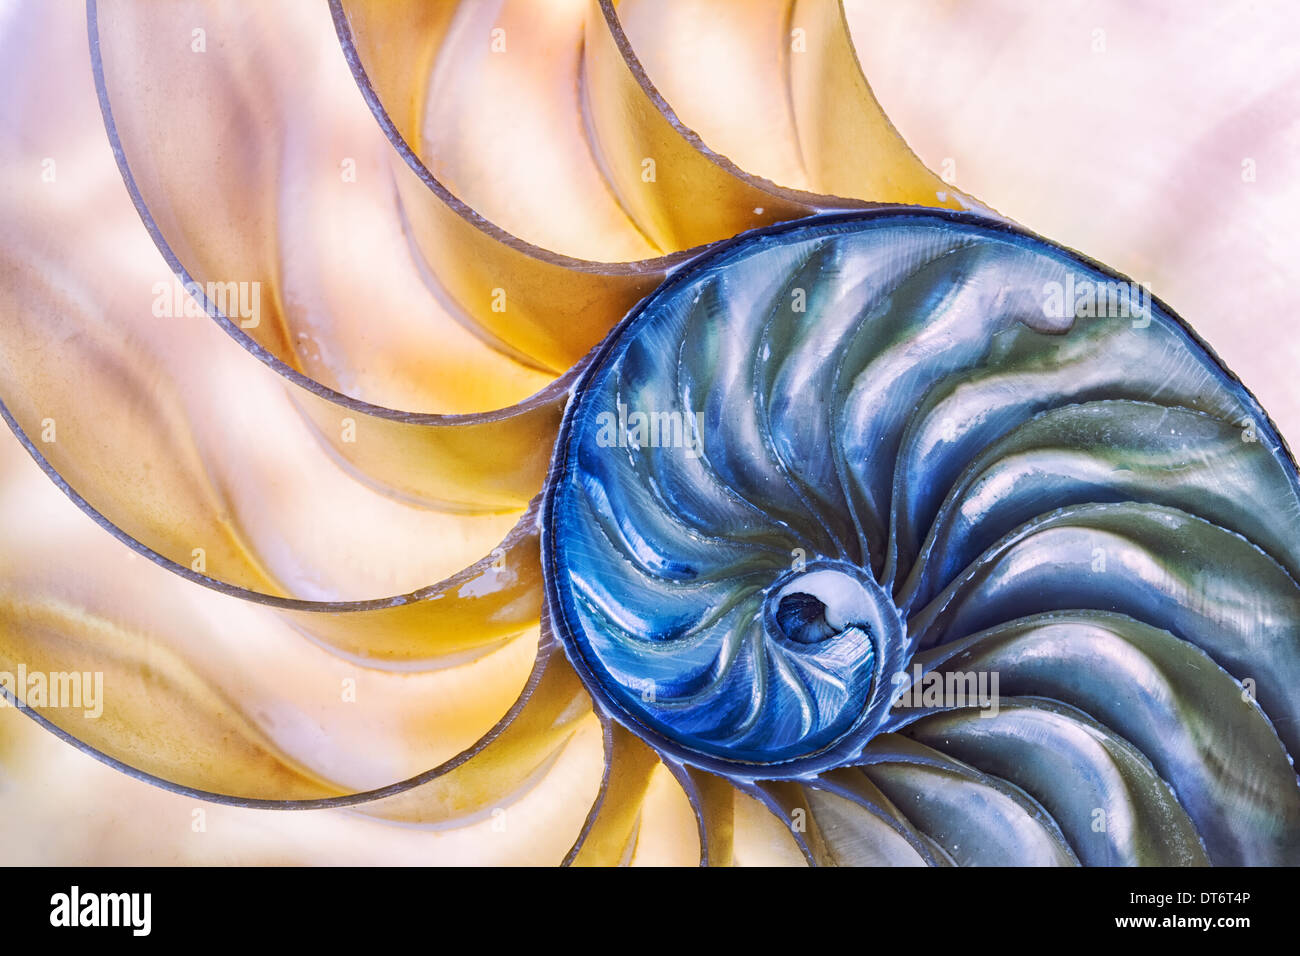 The wonder of nature captured in a nautilus shell. Fine art abstract. - Stock Image